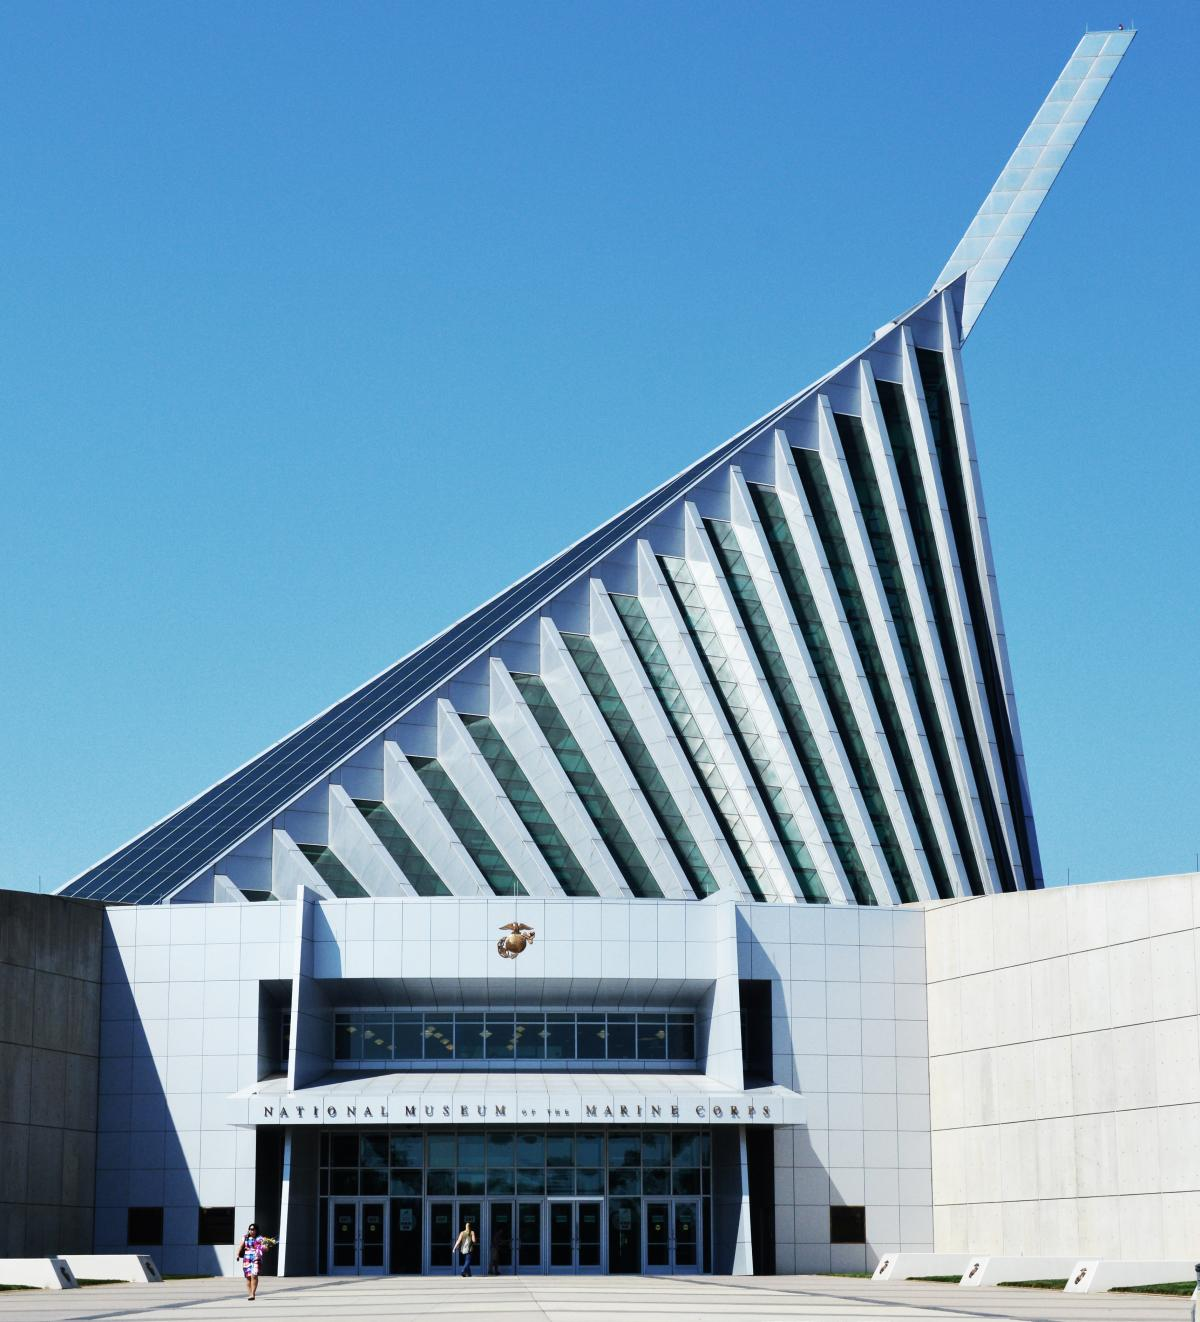 A white building with an off-center triangle roof